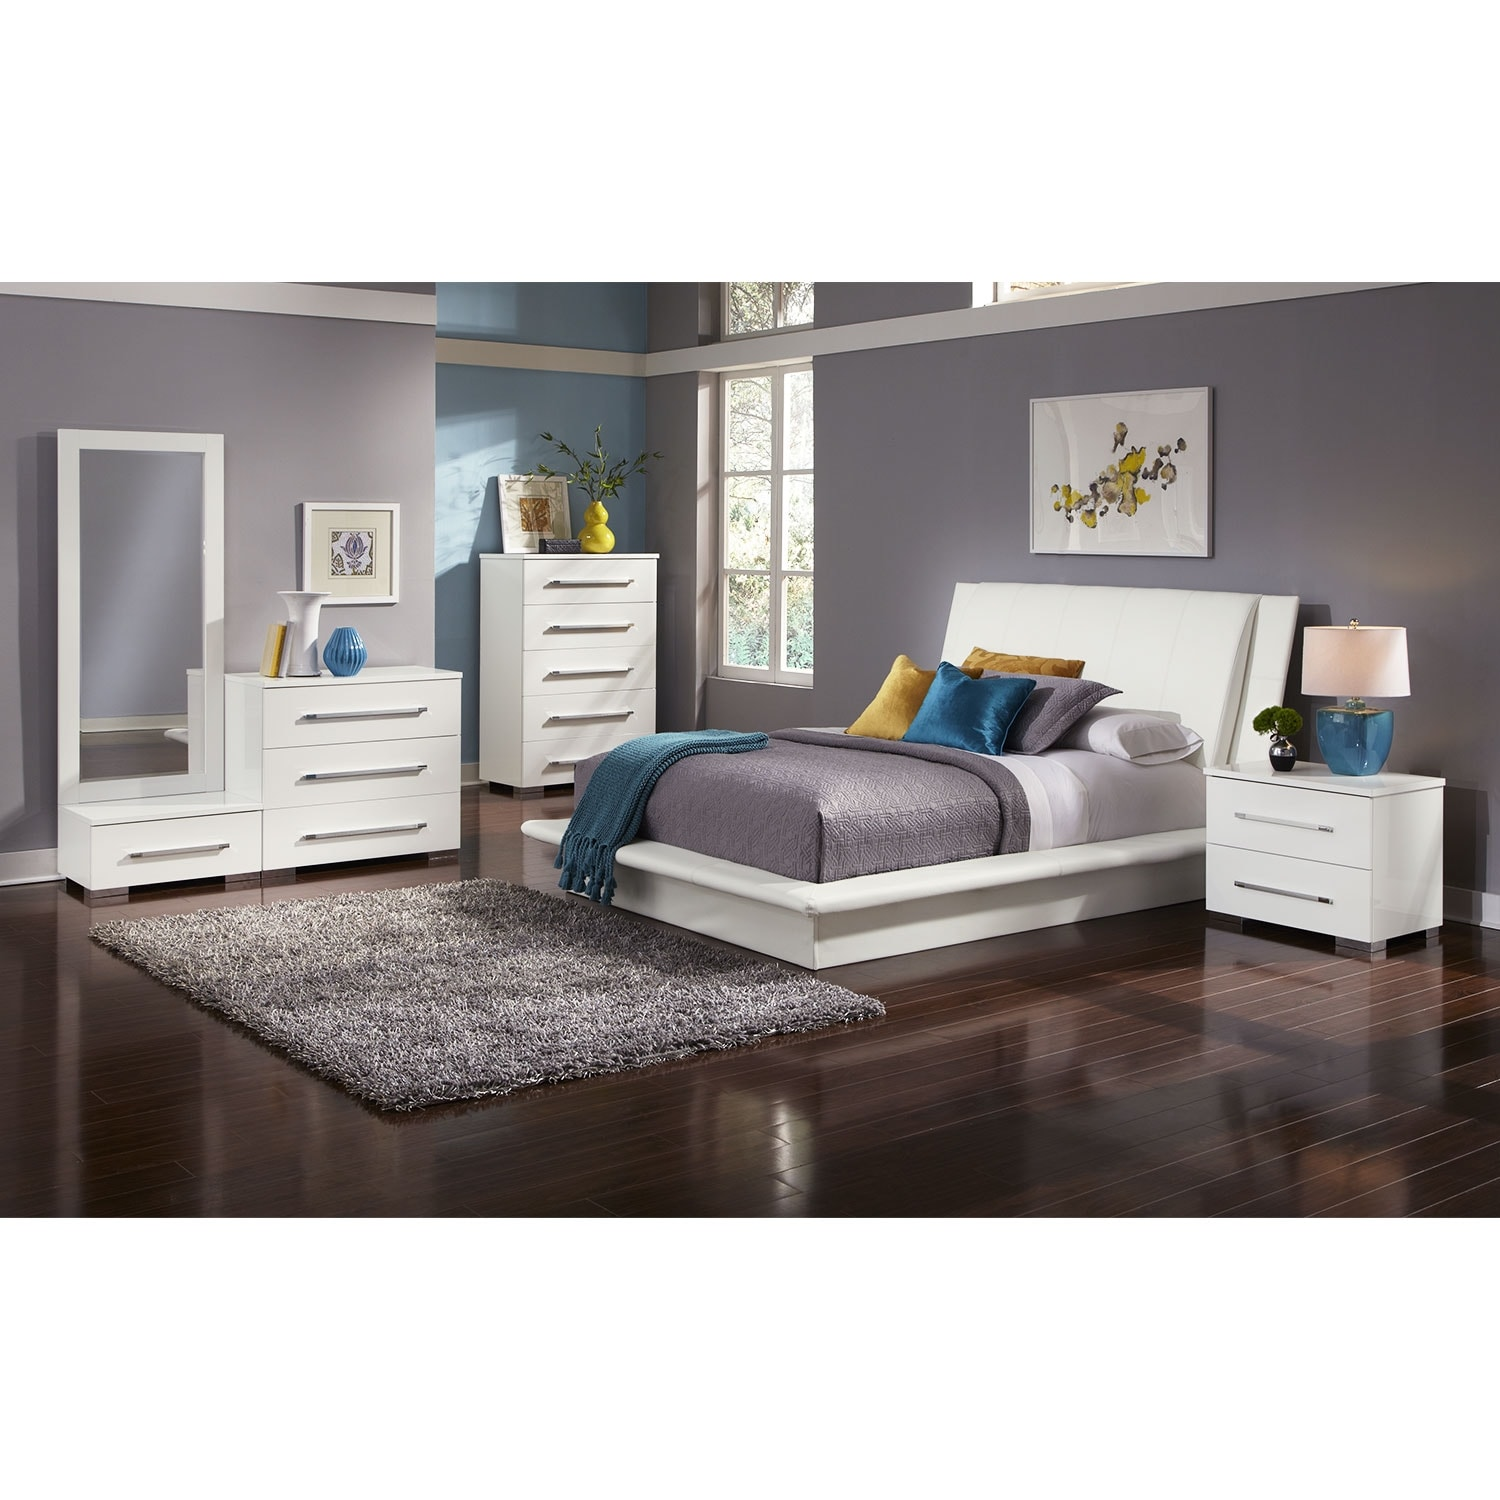 Dimora 7 Piece Queen Upholstered Bedroom Set White